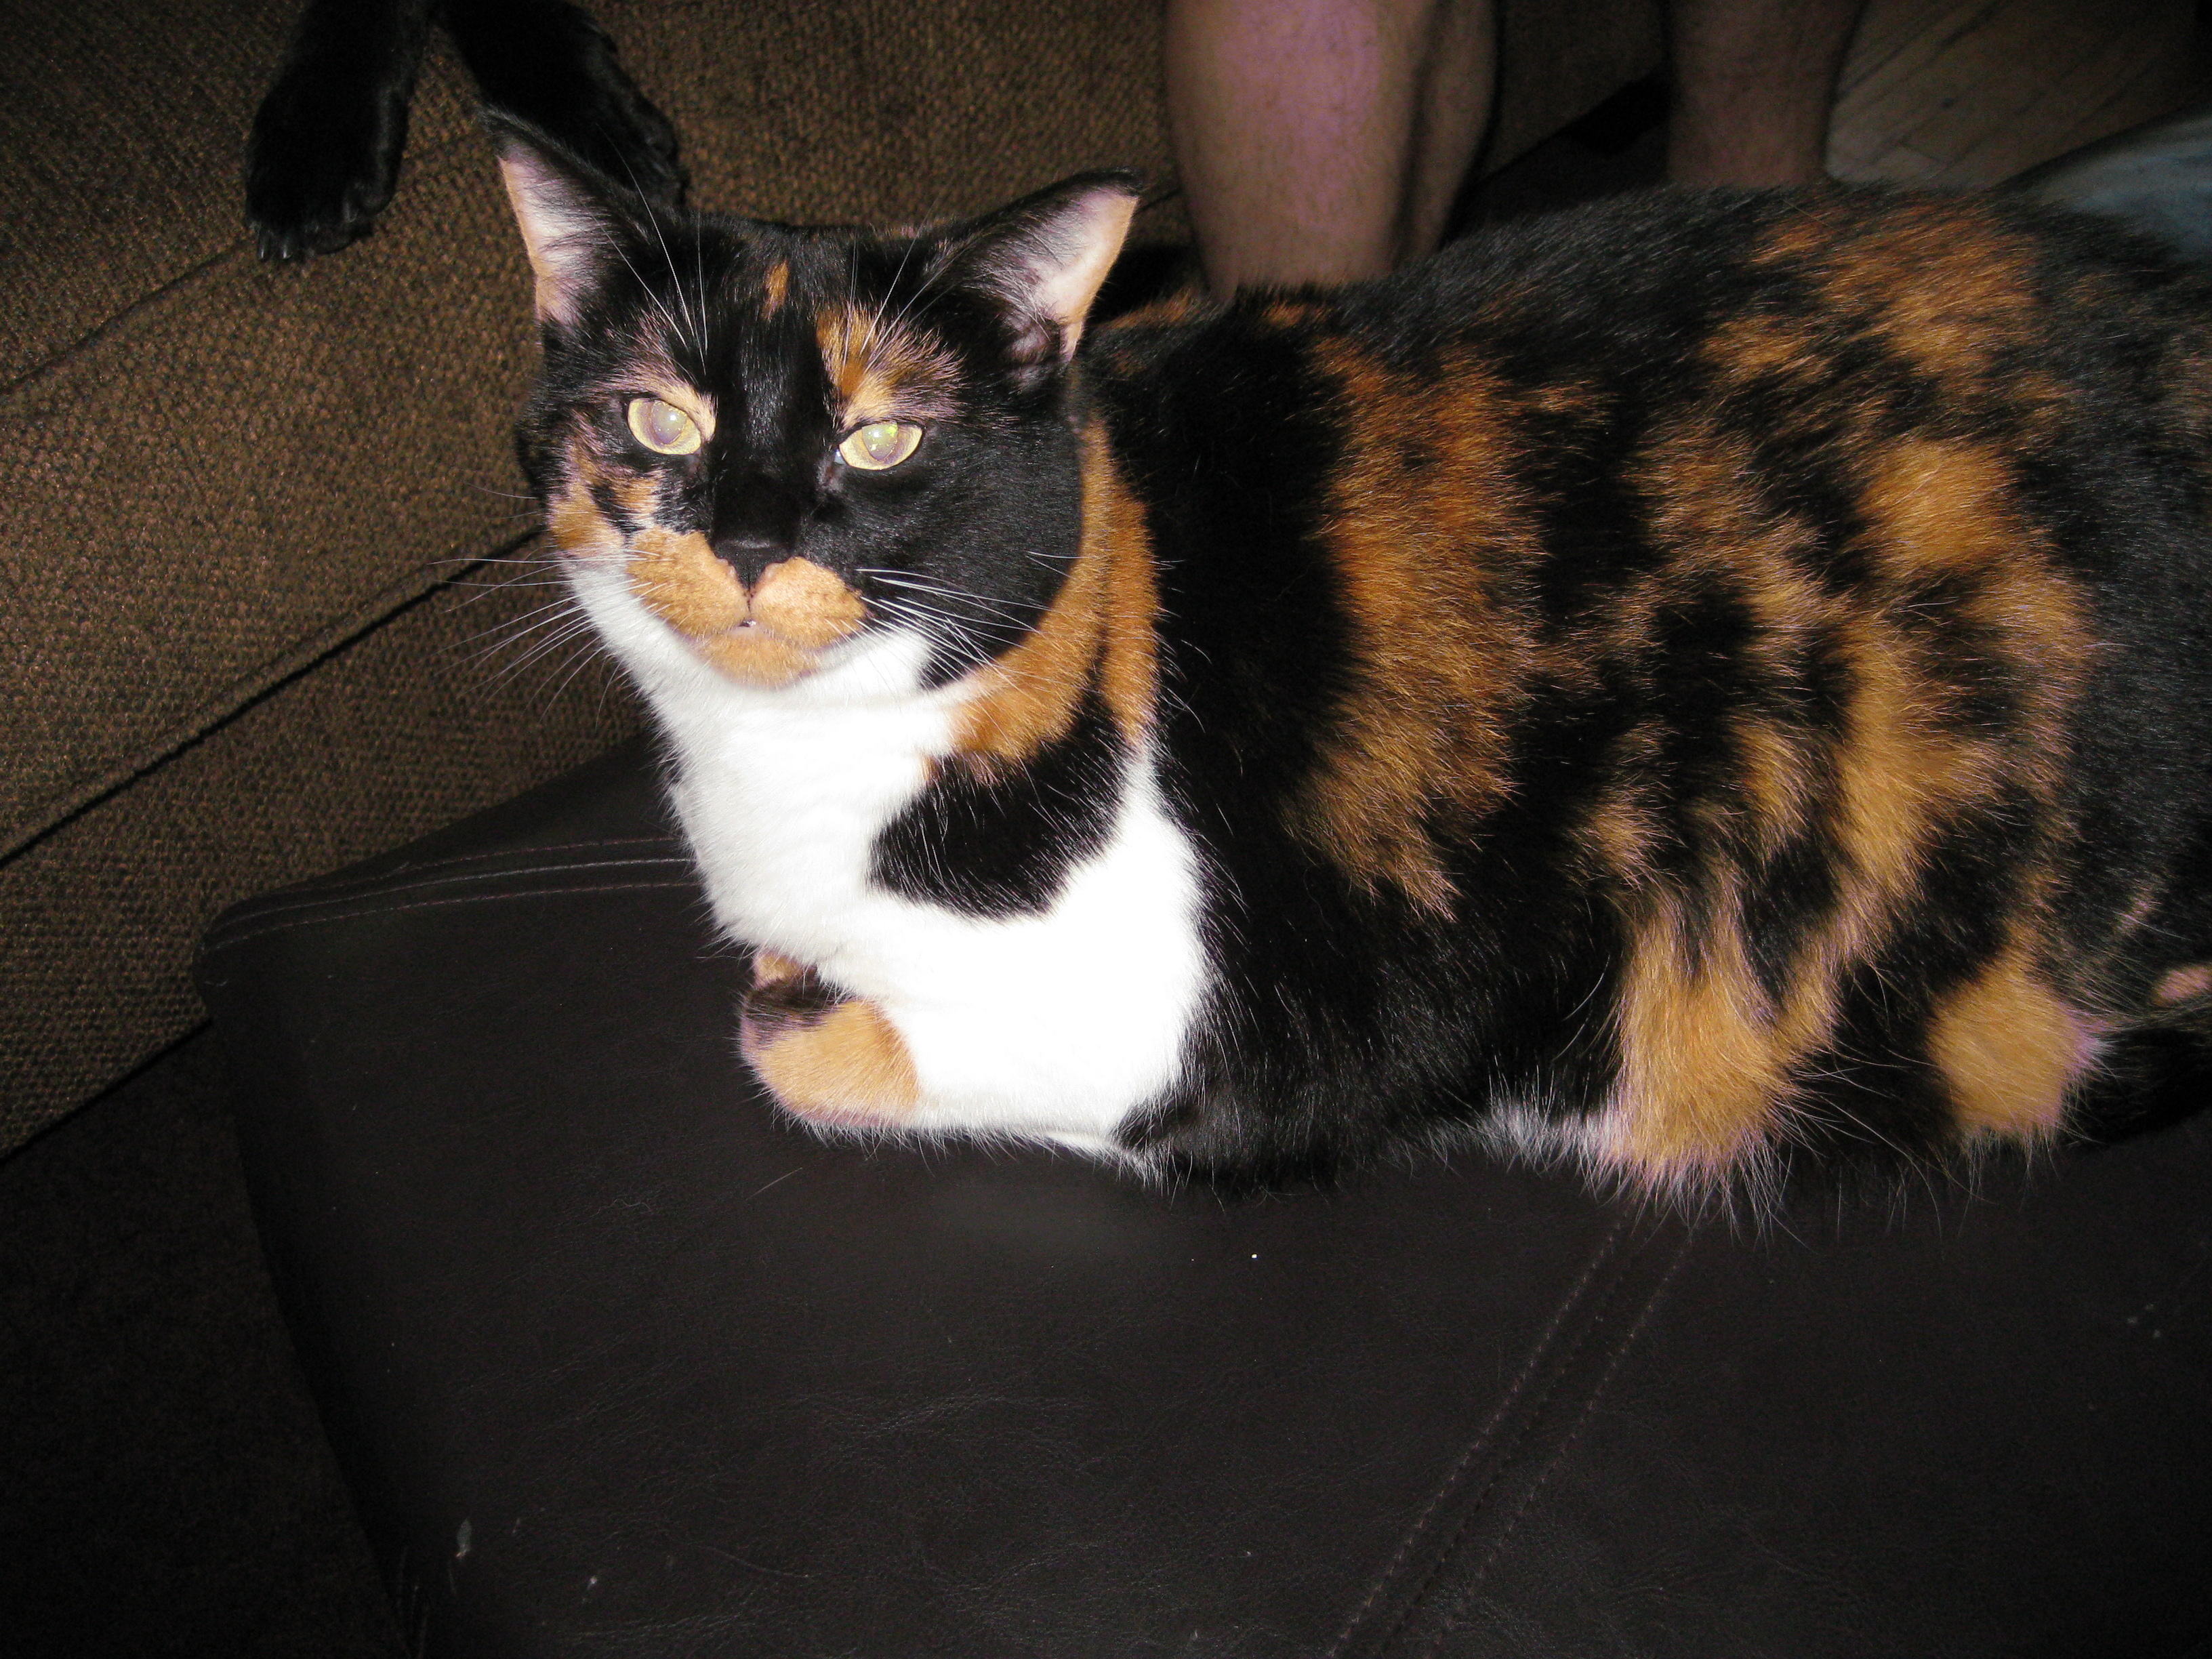 Calico cat sits in loaf form on the floor looking at the camera